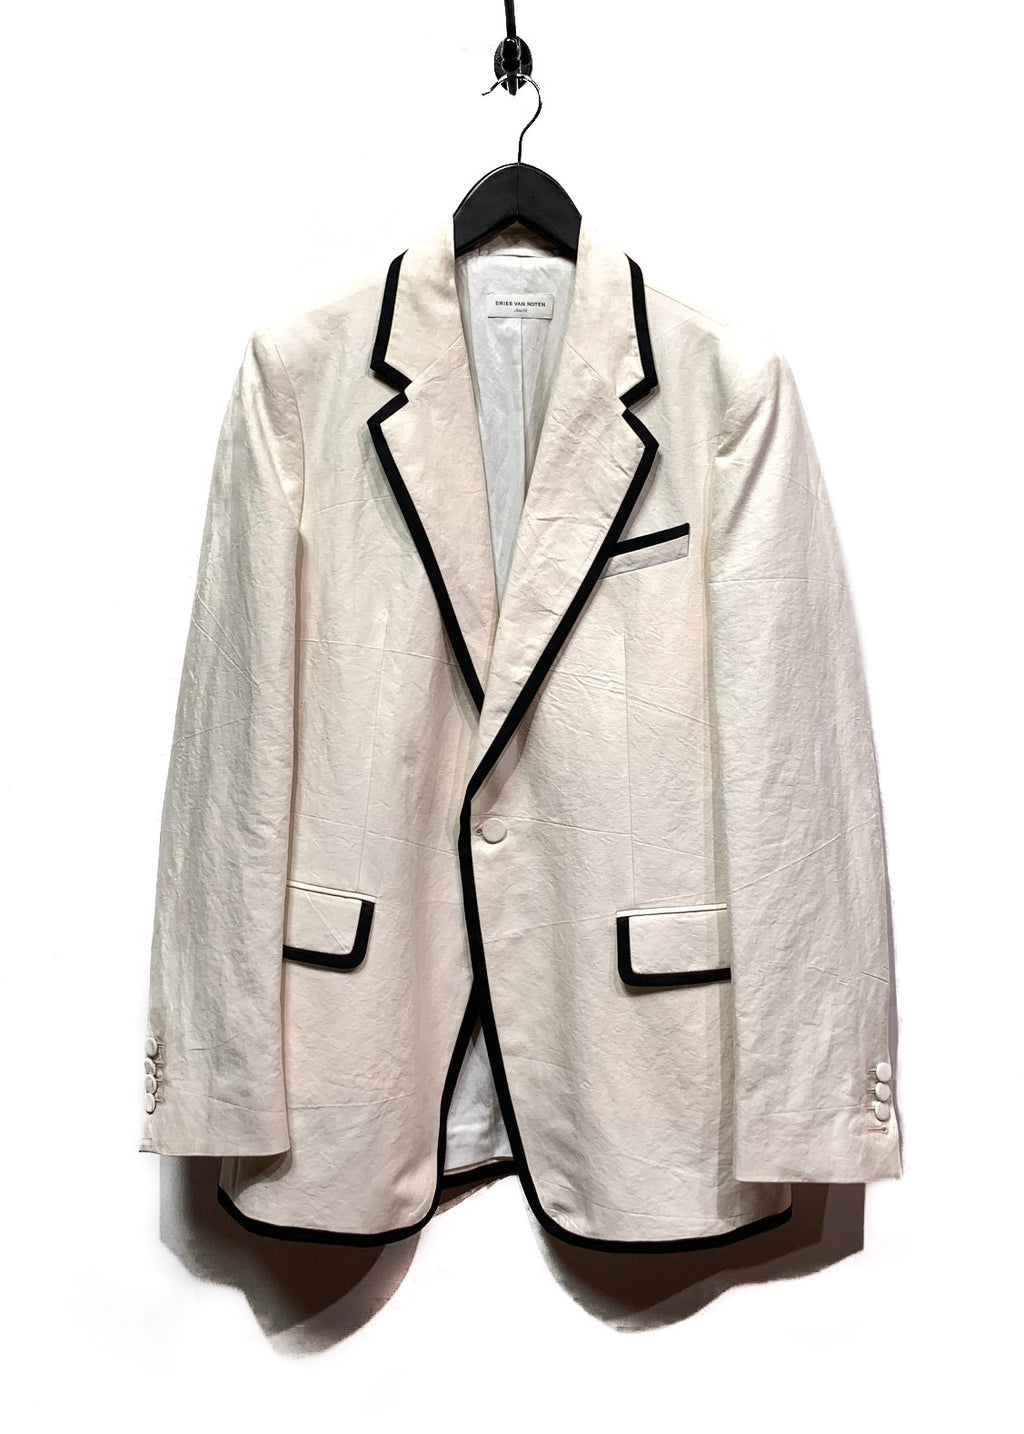 Dries Van Noten Ivory Cotton Piping Detail Blazer